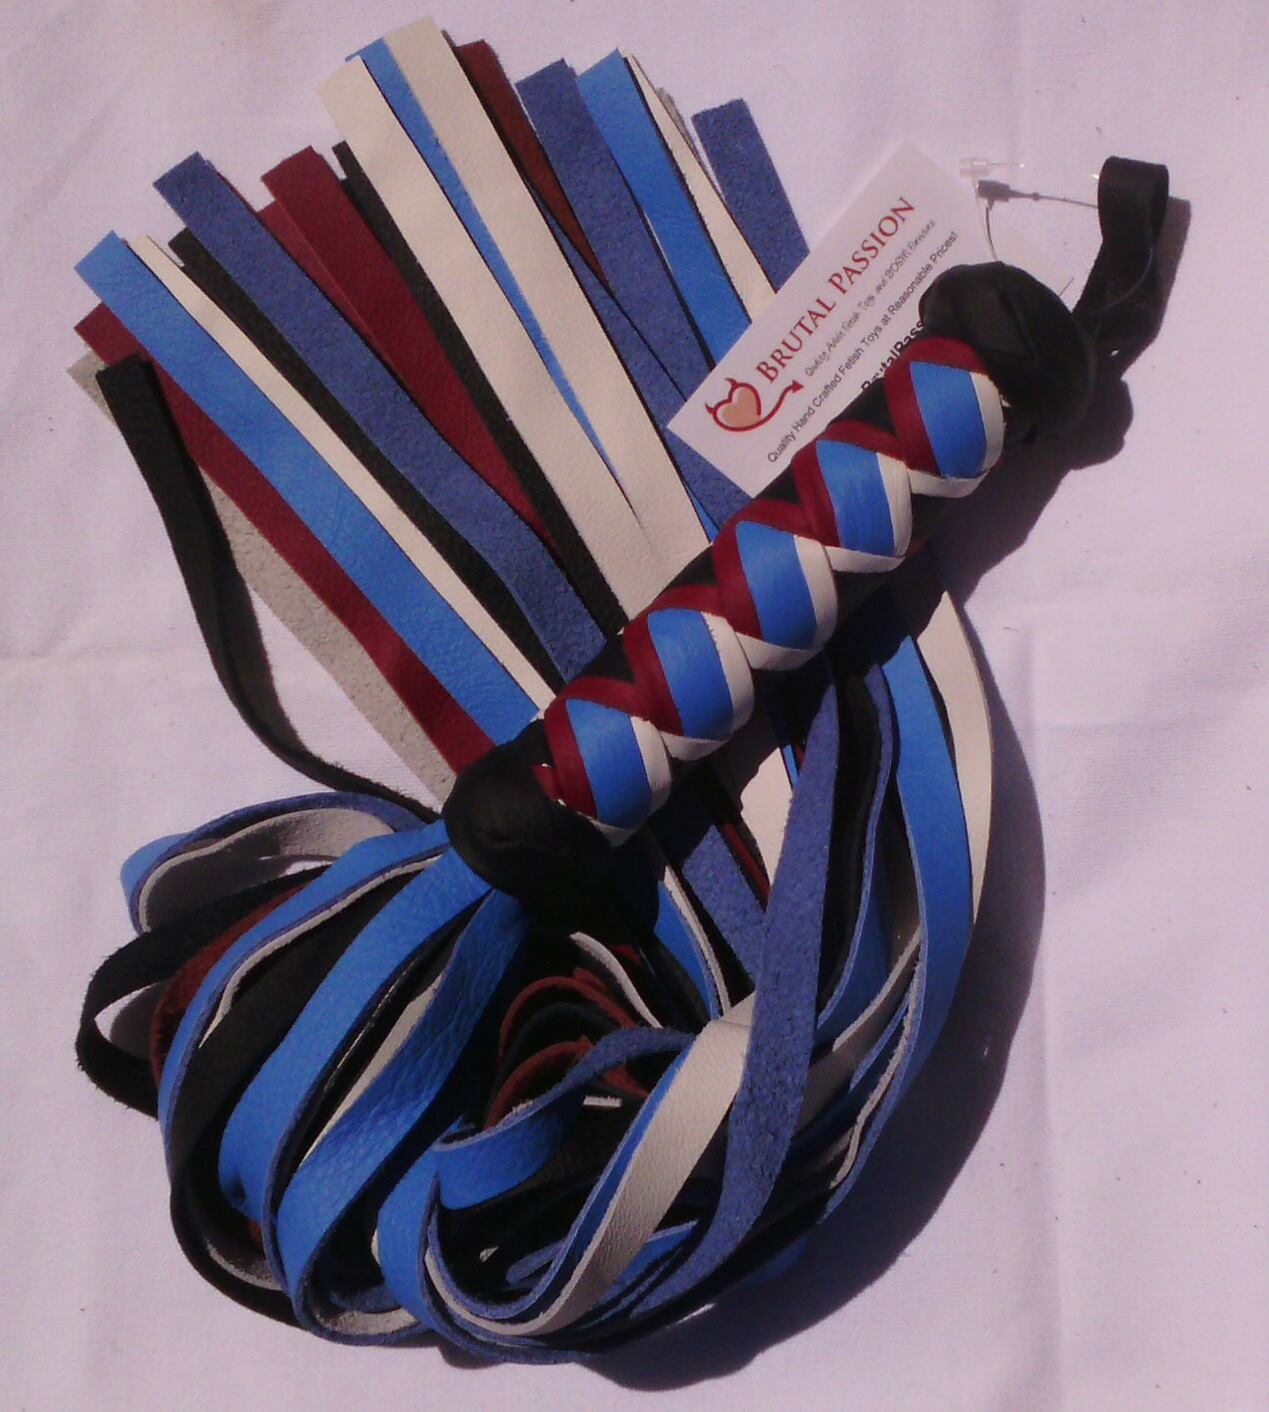 38 Fall Leather Pride Flogger